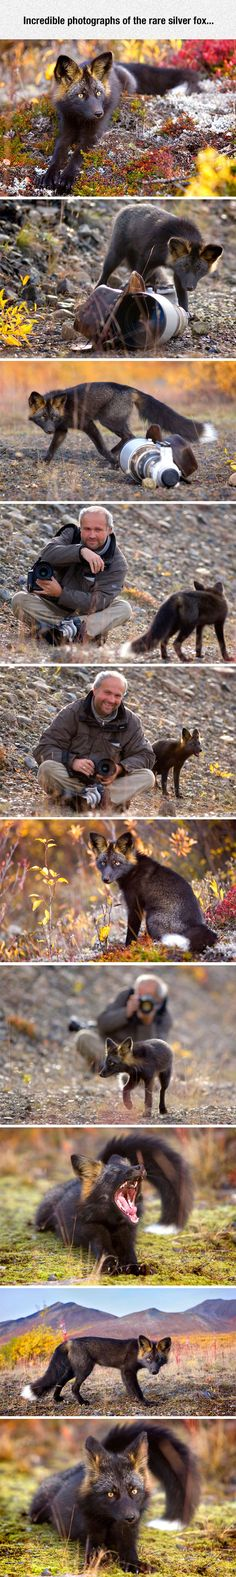 "The silver fox is a melanistic form of red fox. Melanism is when the animal's coloring is much darker than normal.  Interestingly, fox squirrels, who have brownish body fur and reddish tummy fur also have a melanistic form that resembles this.  I had a ""black"" fox squirrel that I hand raised.  He lived to be 12 years old, a full ten years longer than he would have in the wild."